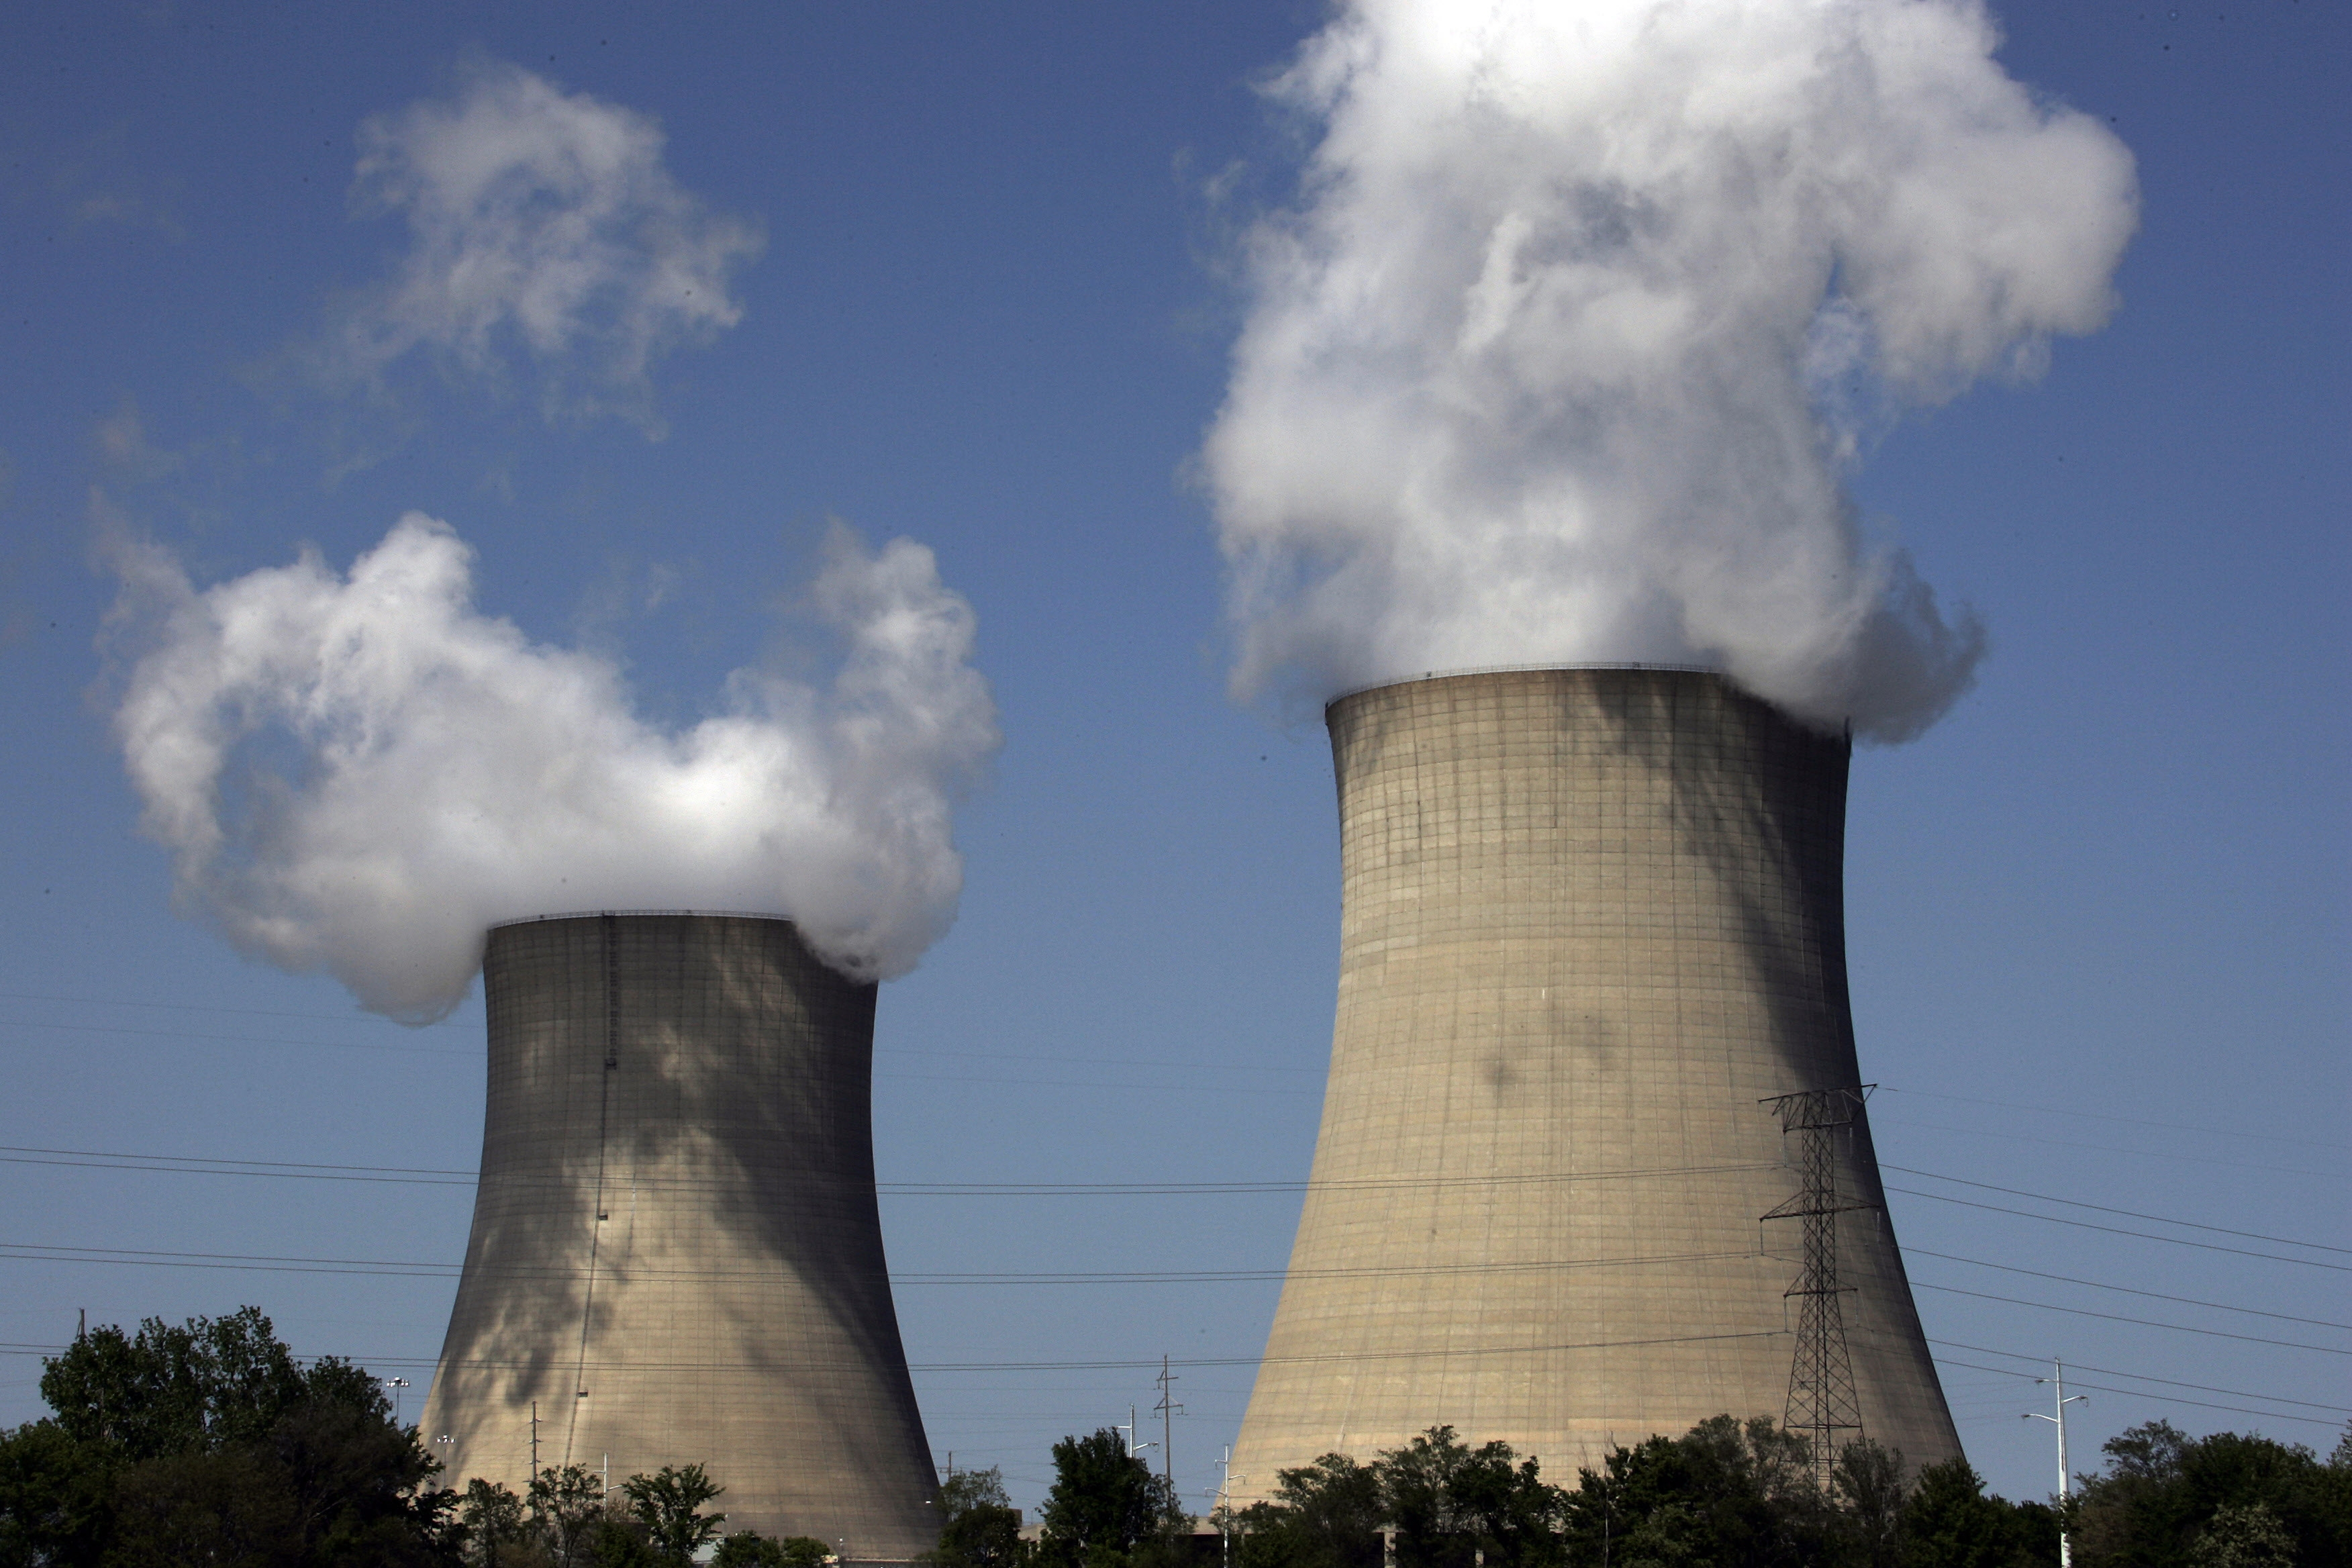 three mile island nuclear plant will close in 2 years